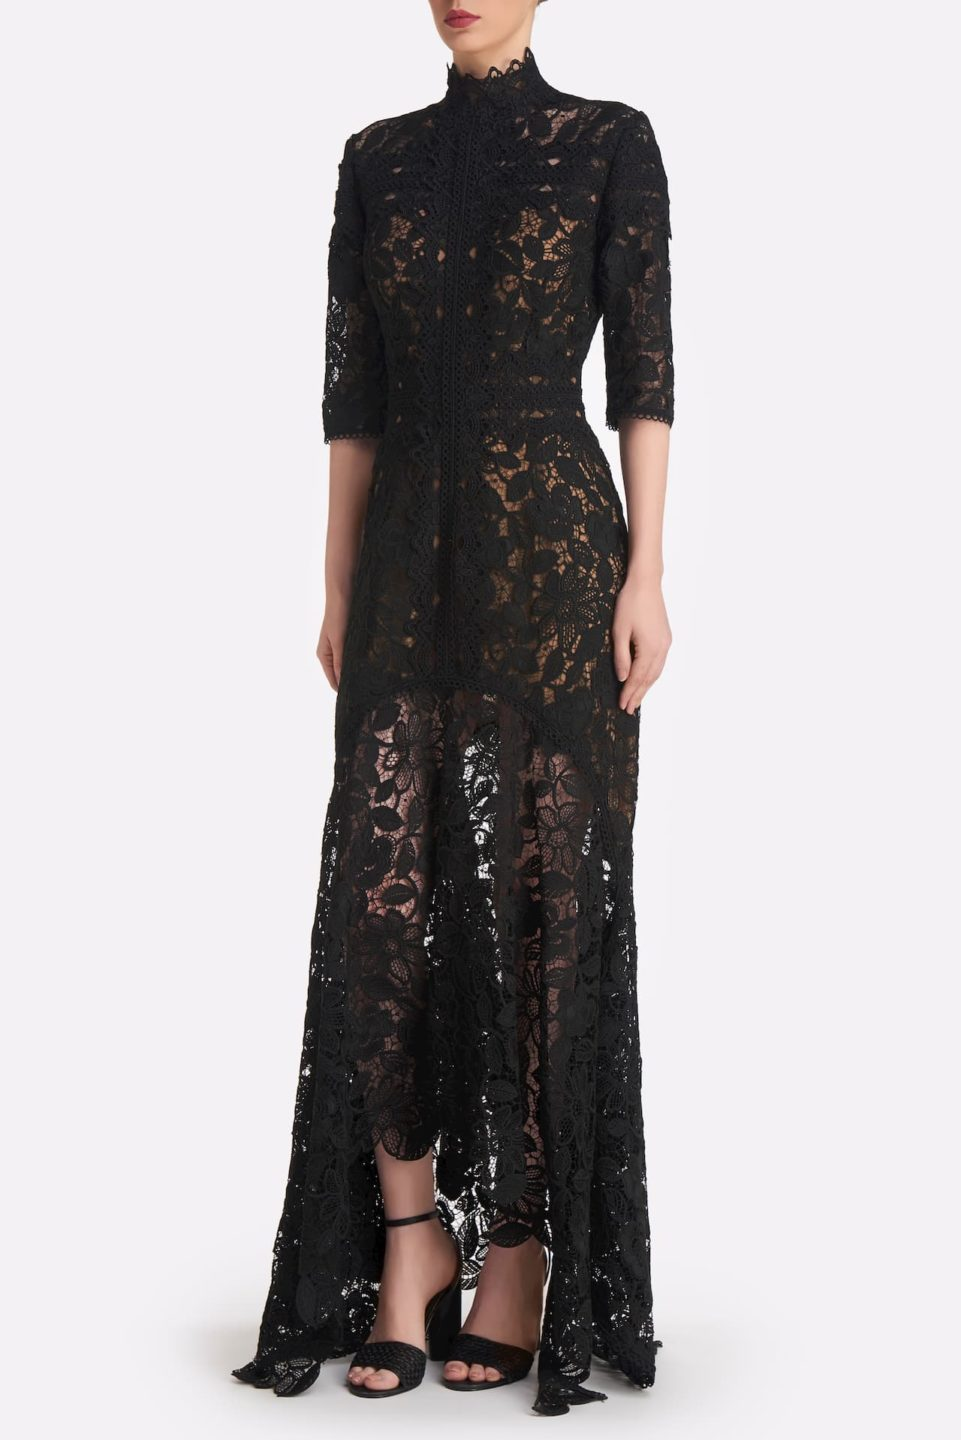 Kalissa SS2159 Black Guipure Lace fitted handkerchief gown with high-neckline